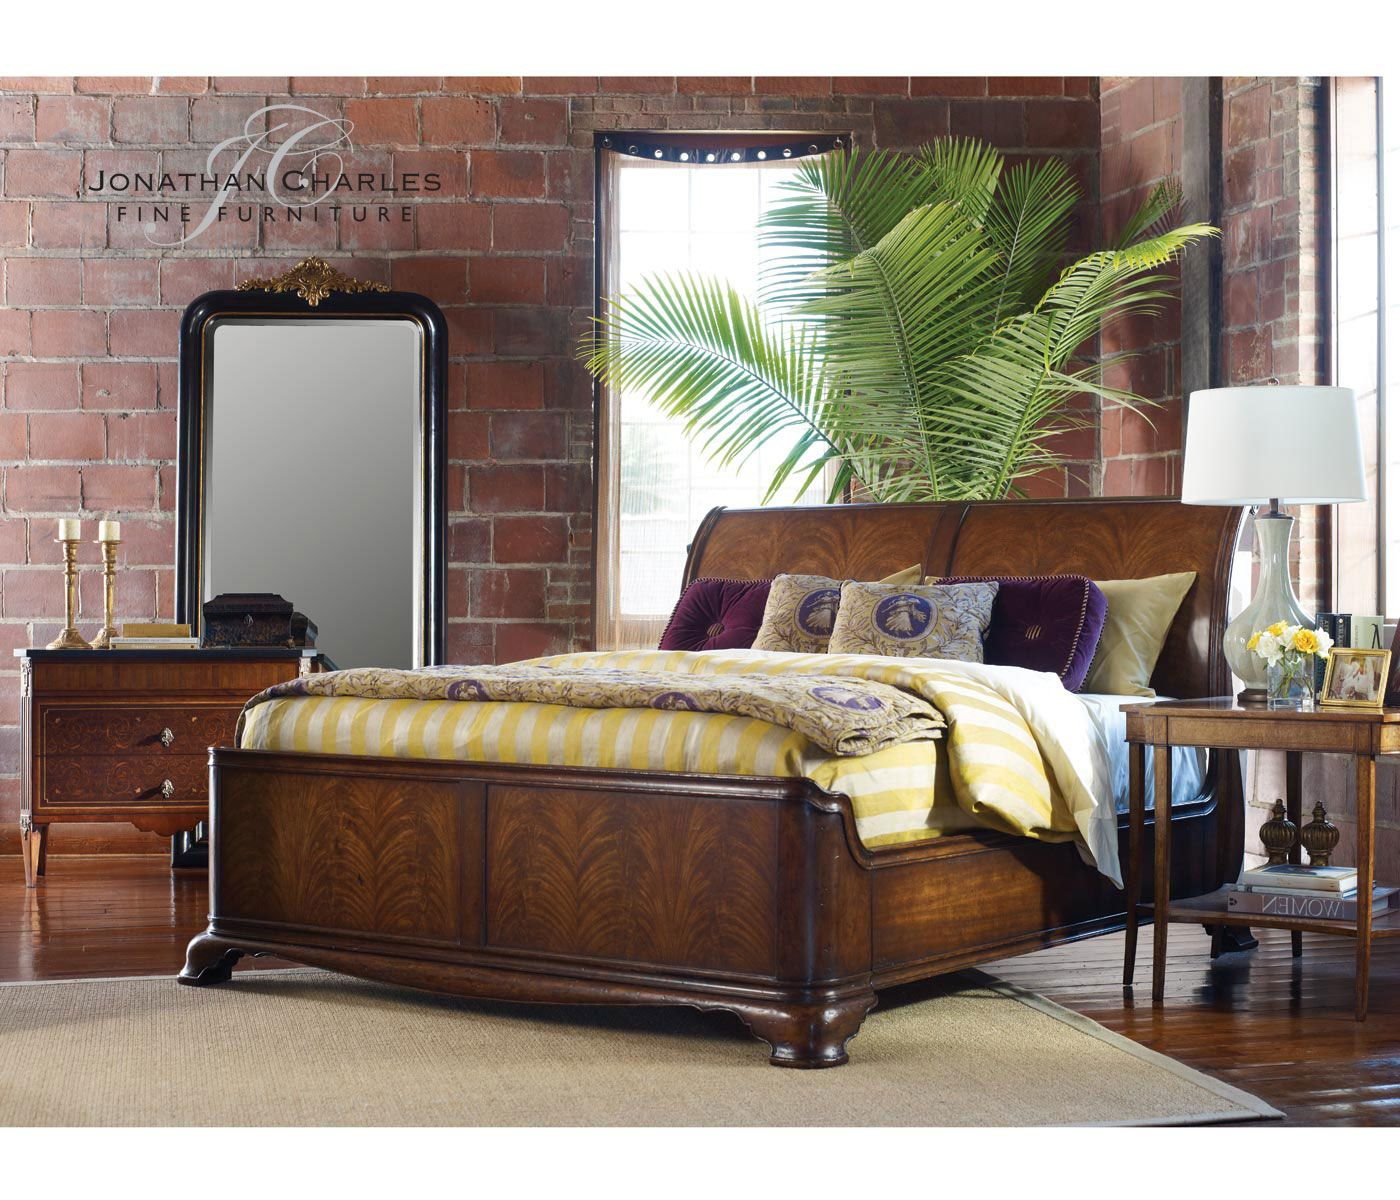 beautiful bed by jonathan charles fine furniture